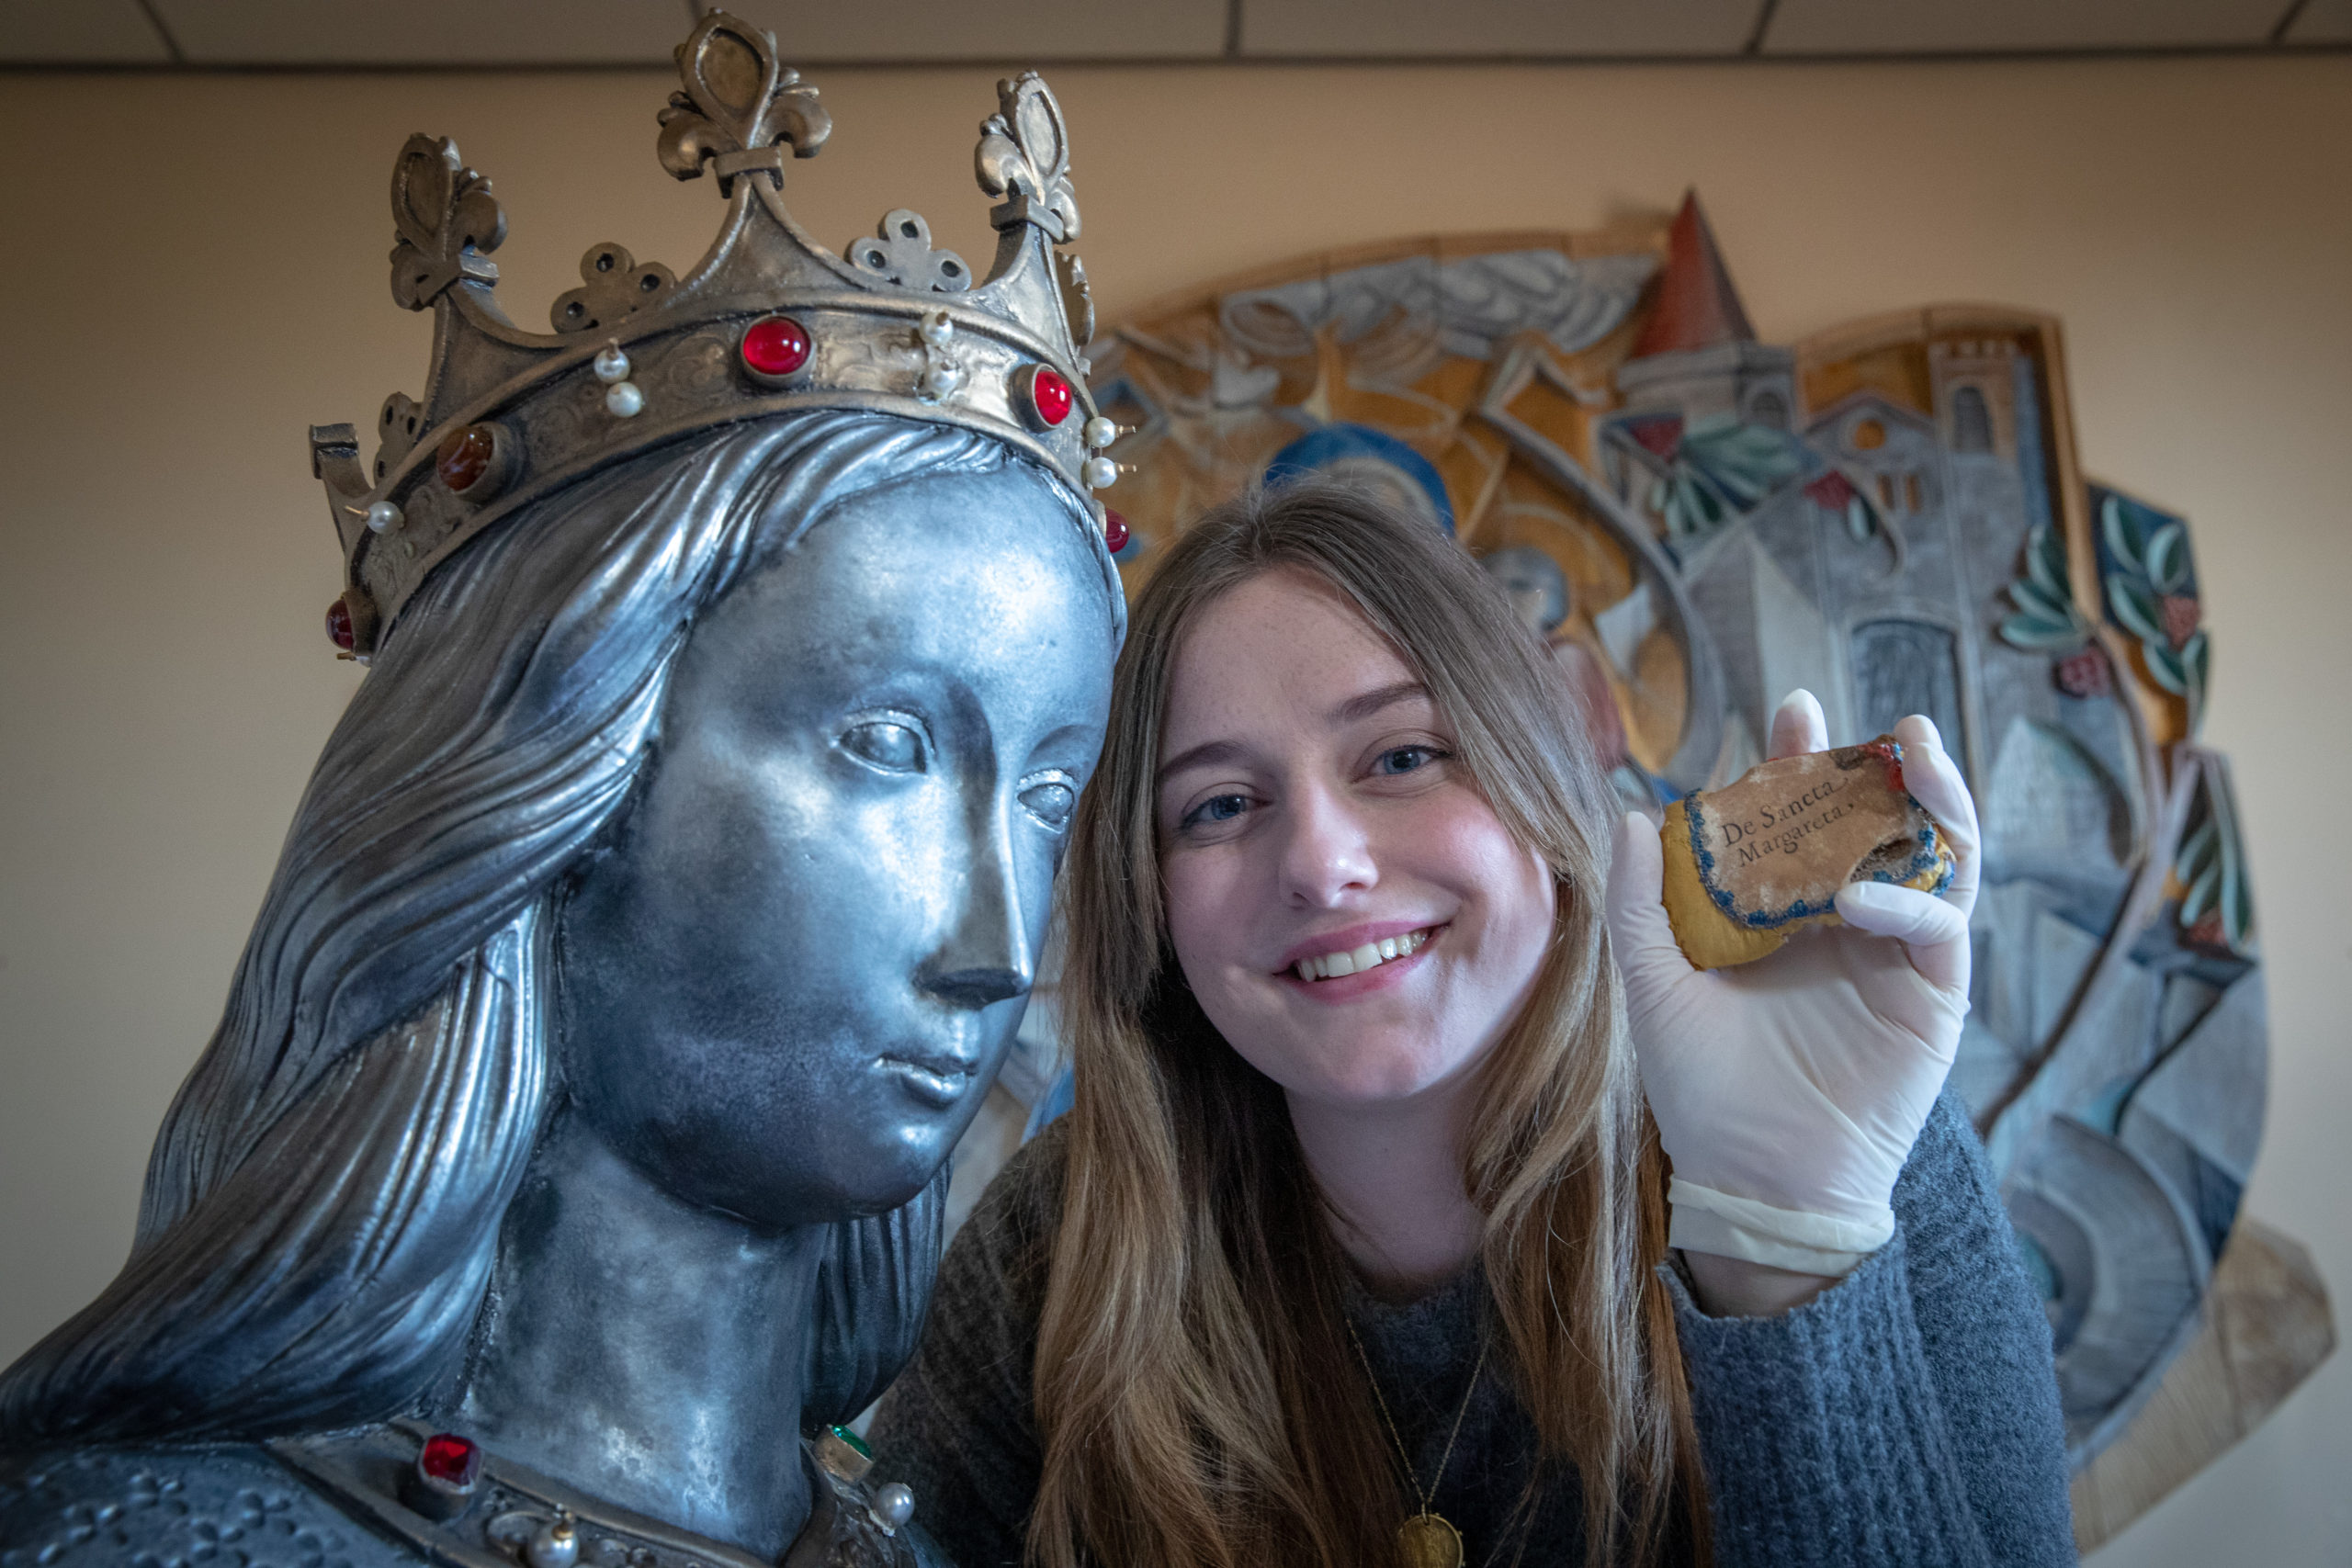 Lauren Gill, final year archaeology student, conducted scan and made 3D print of Saint Margaret relic in Dunfermline in 2019